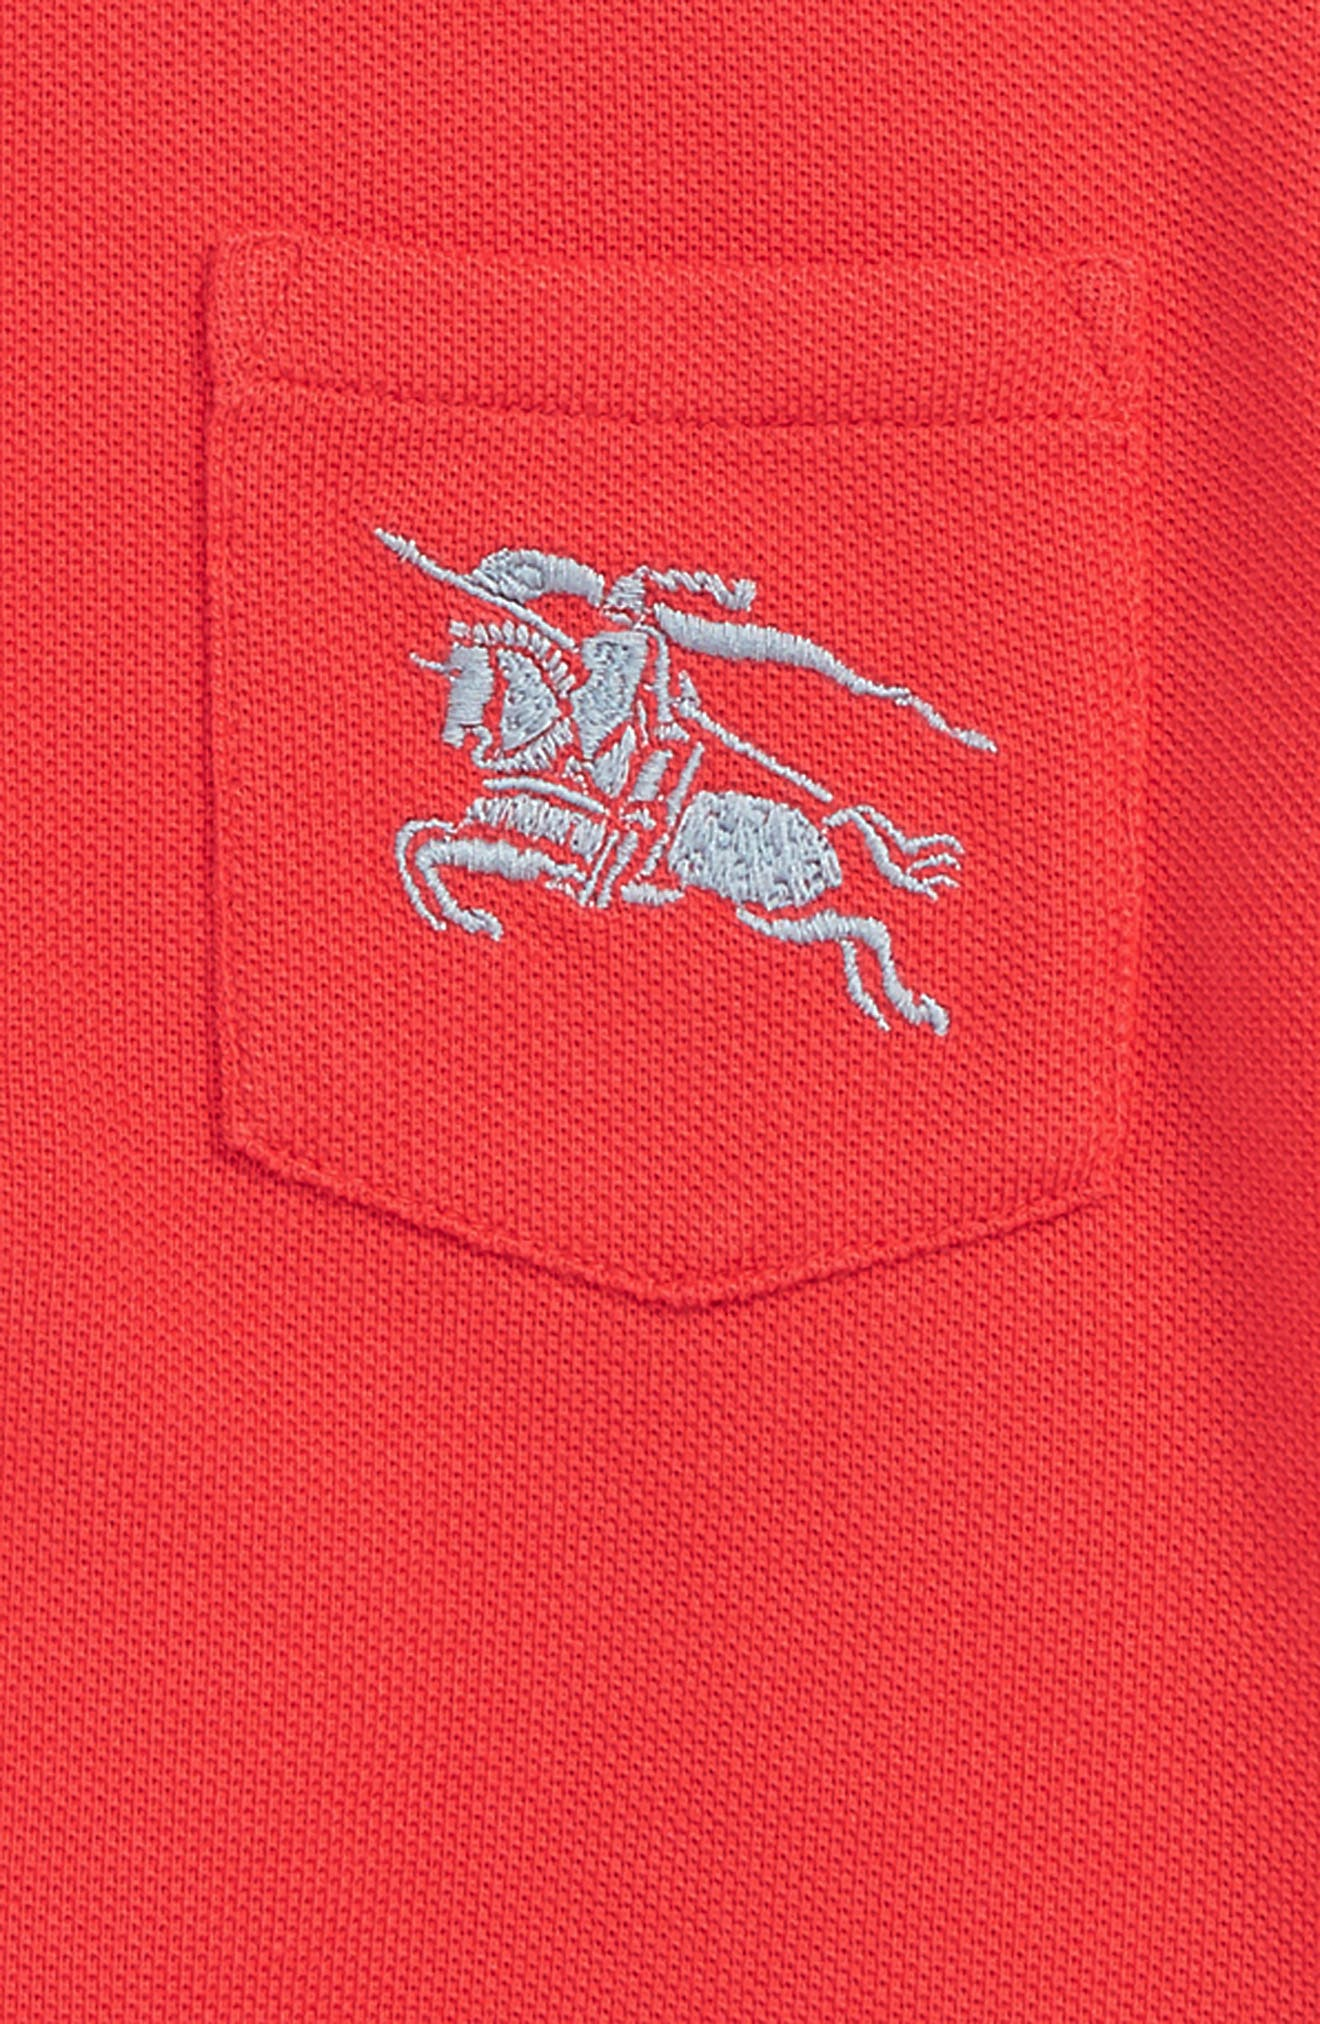 BURBERRY,                             Grant Polo,                             Alternate thumbnail 2, color,                             BRIGHT RED